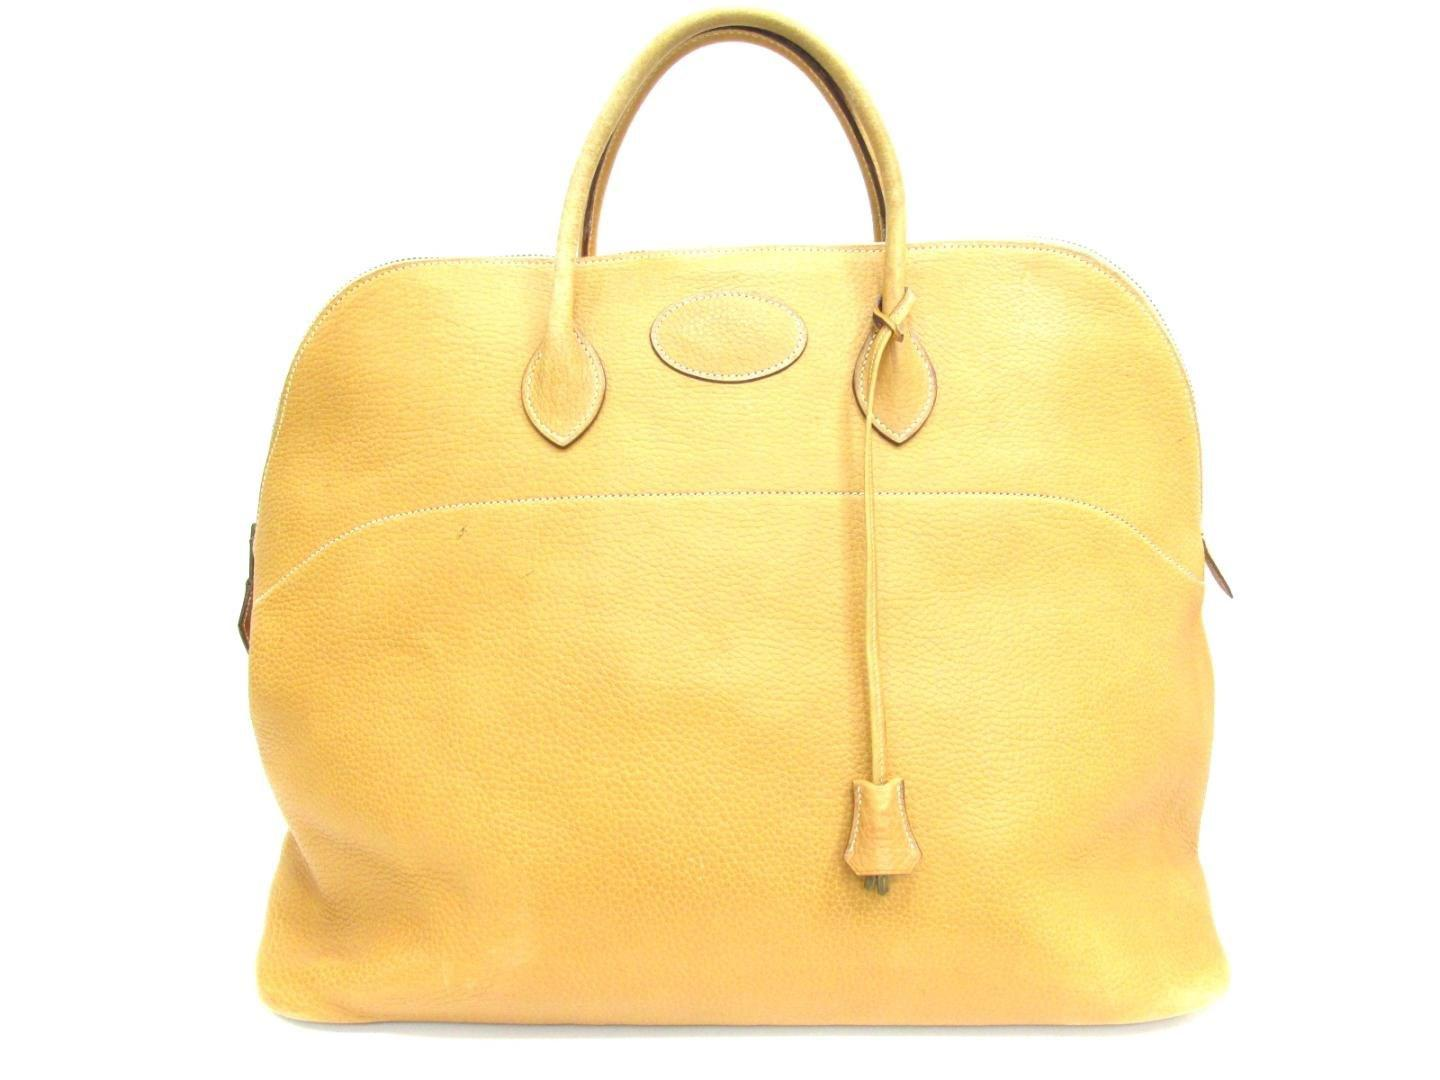 69b760df40 real lyst hermès bolide 47 handbag ardennes leather natural in yellow 94f87  01b21